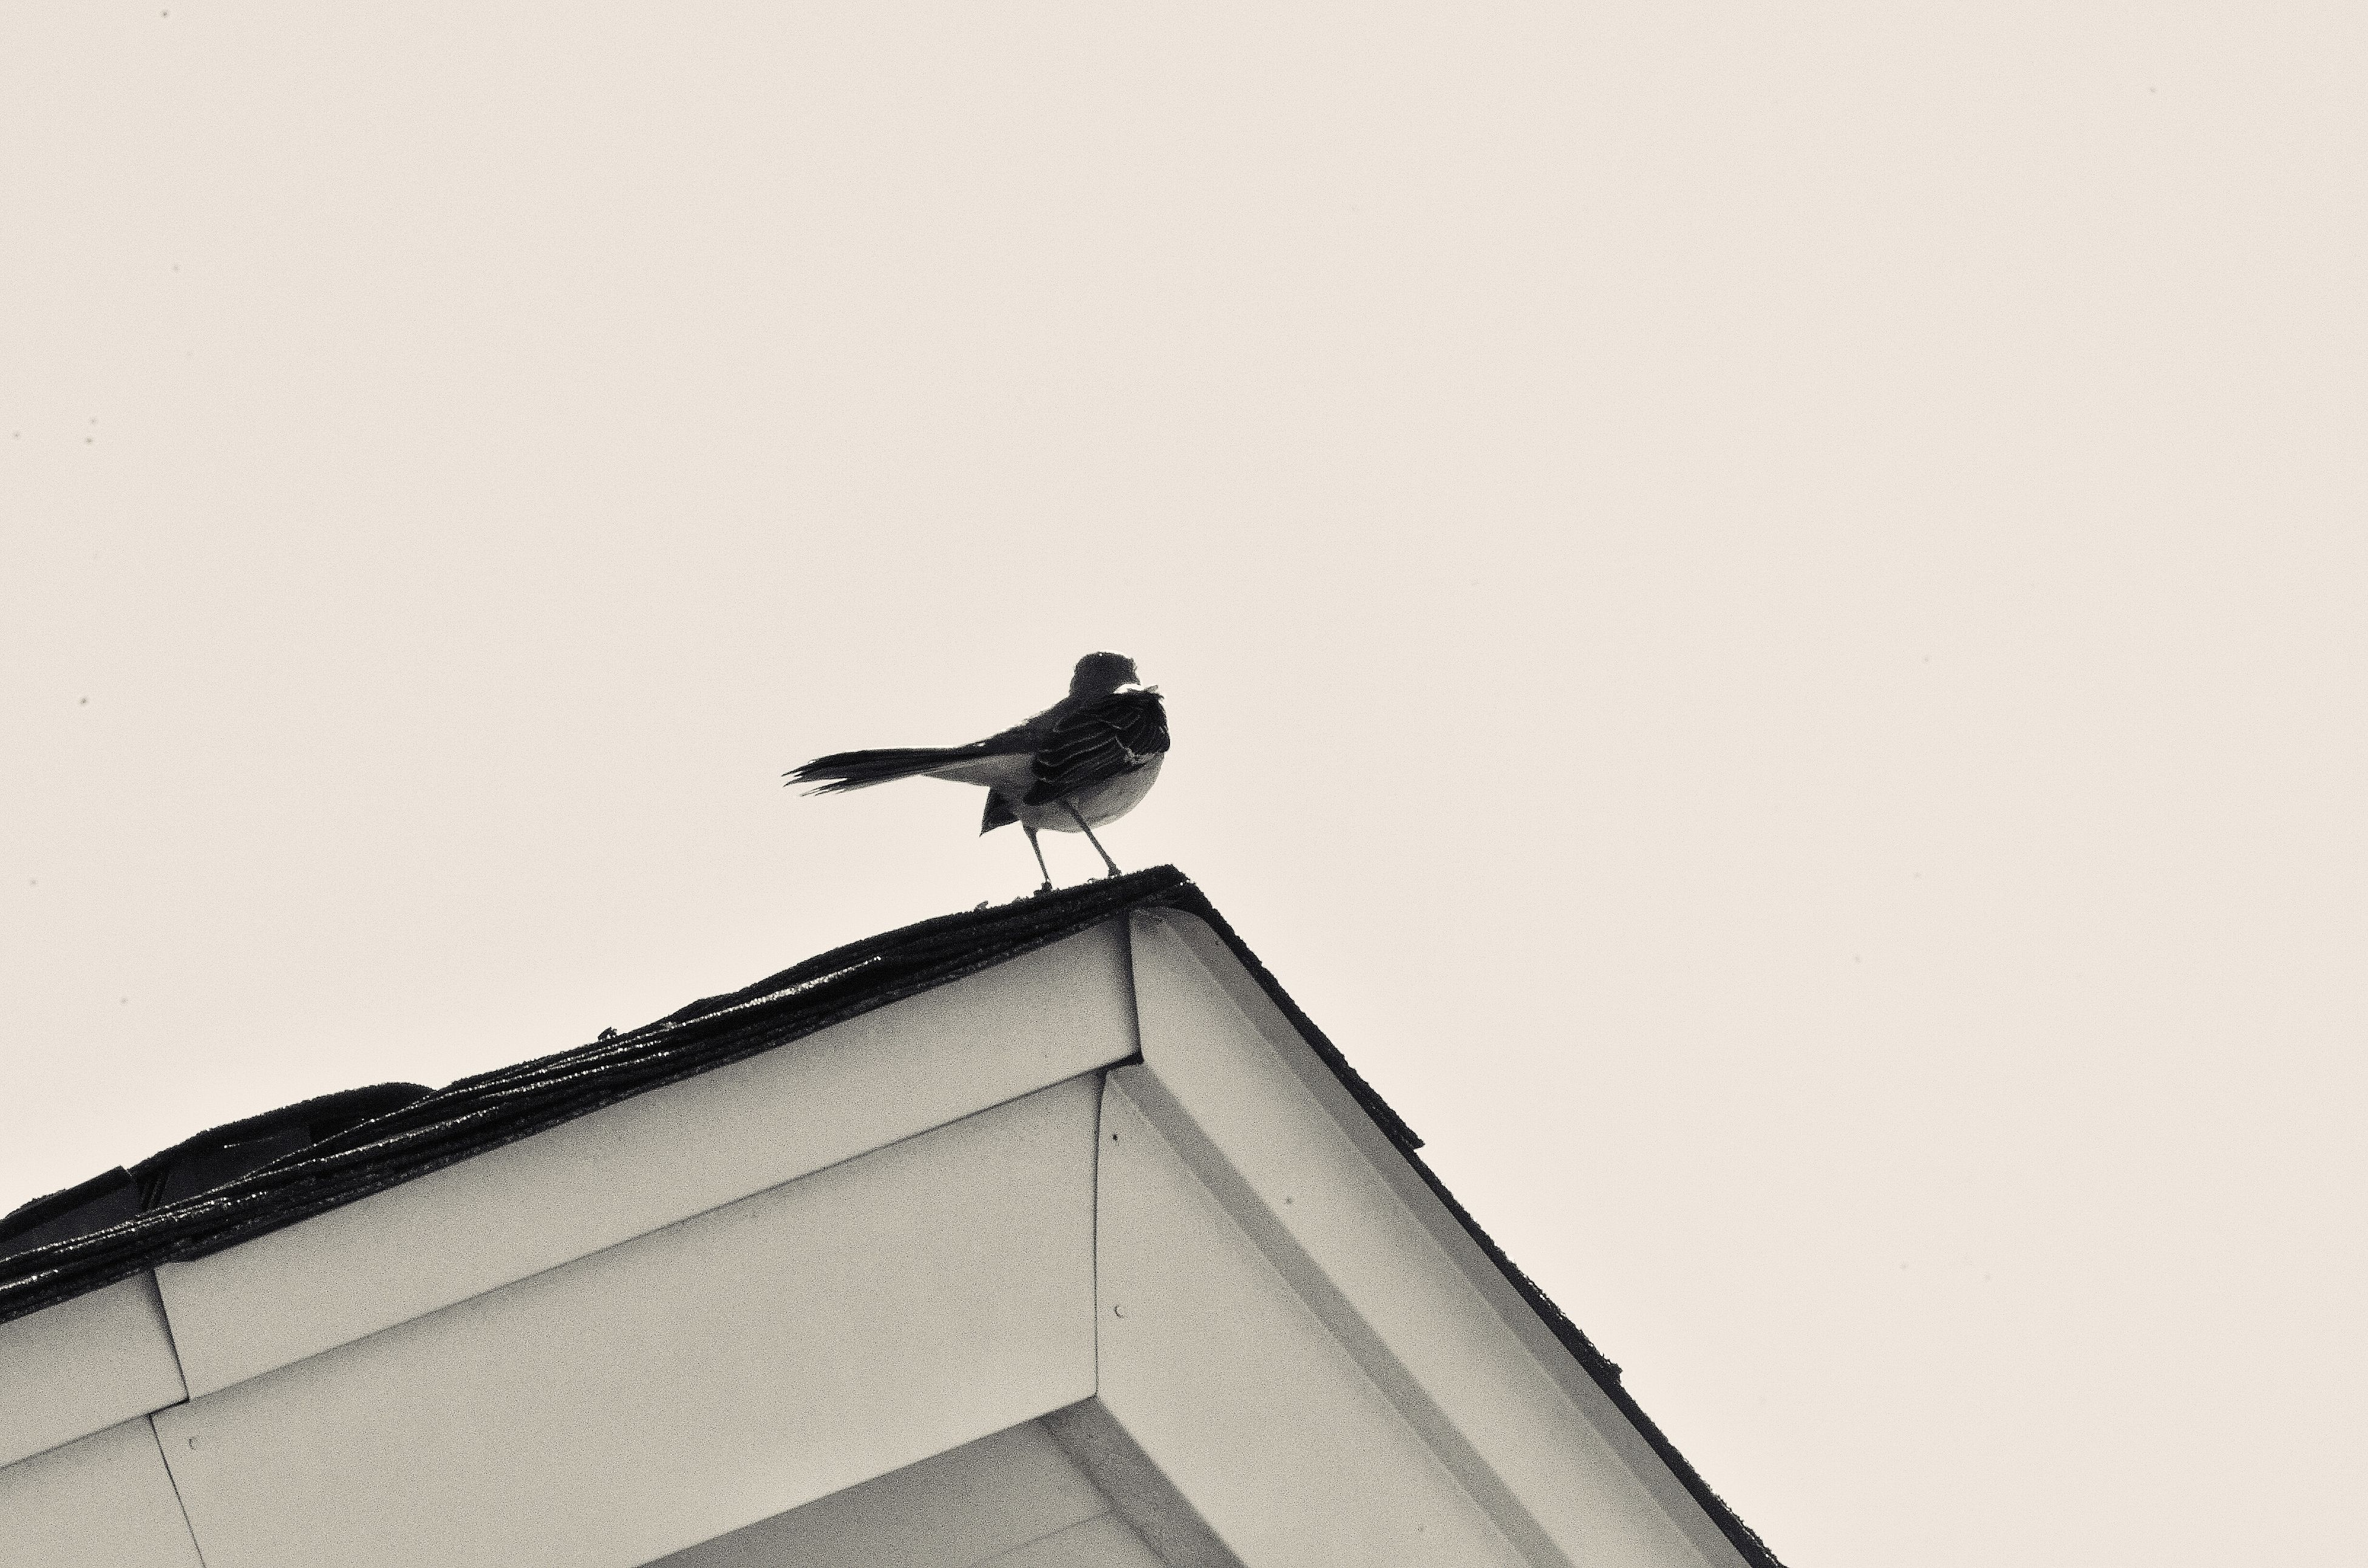 bird, low angle view, no people, animal themes, animals in the wild, one animal, outdoors, day, perching, animal wildlife, nature